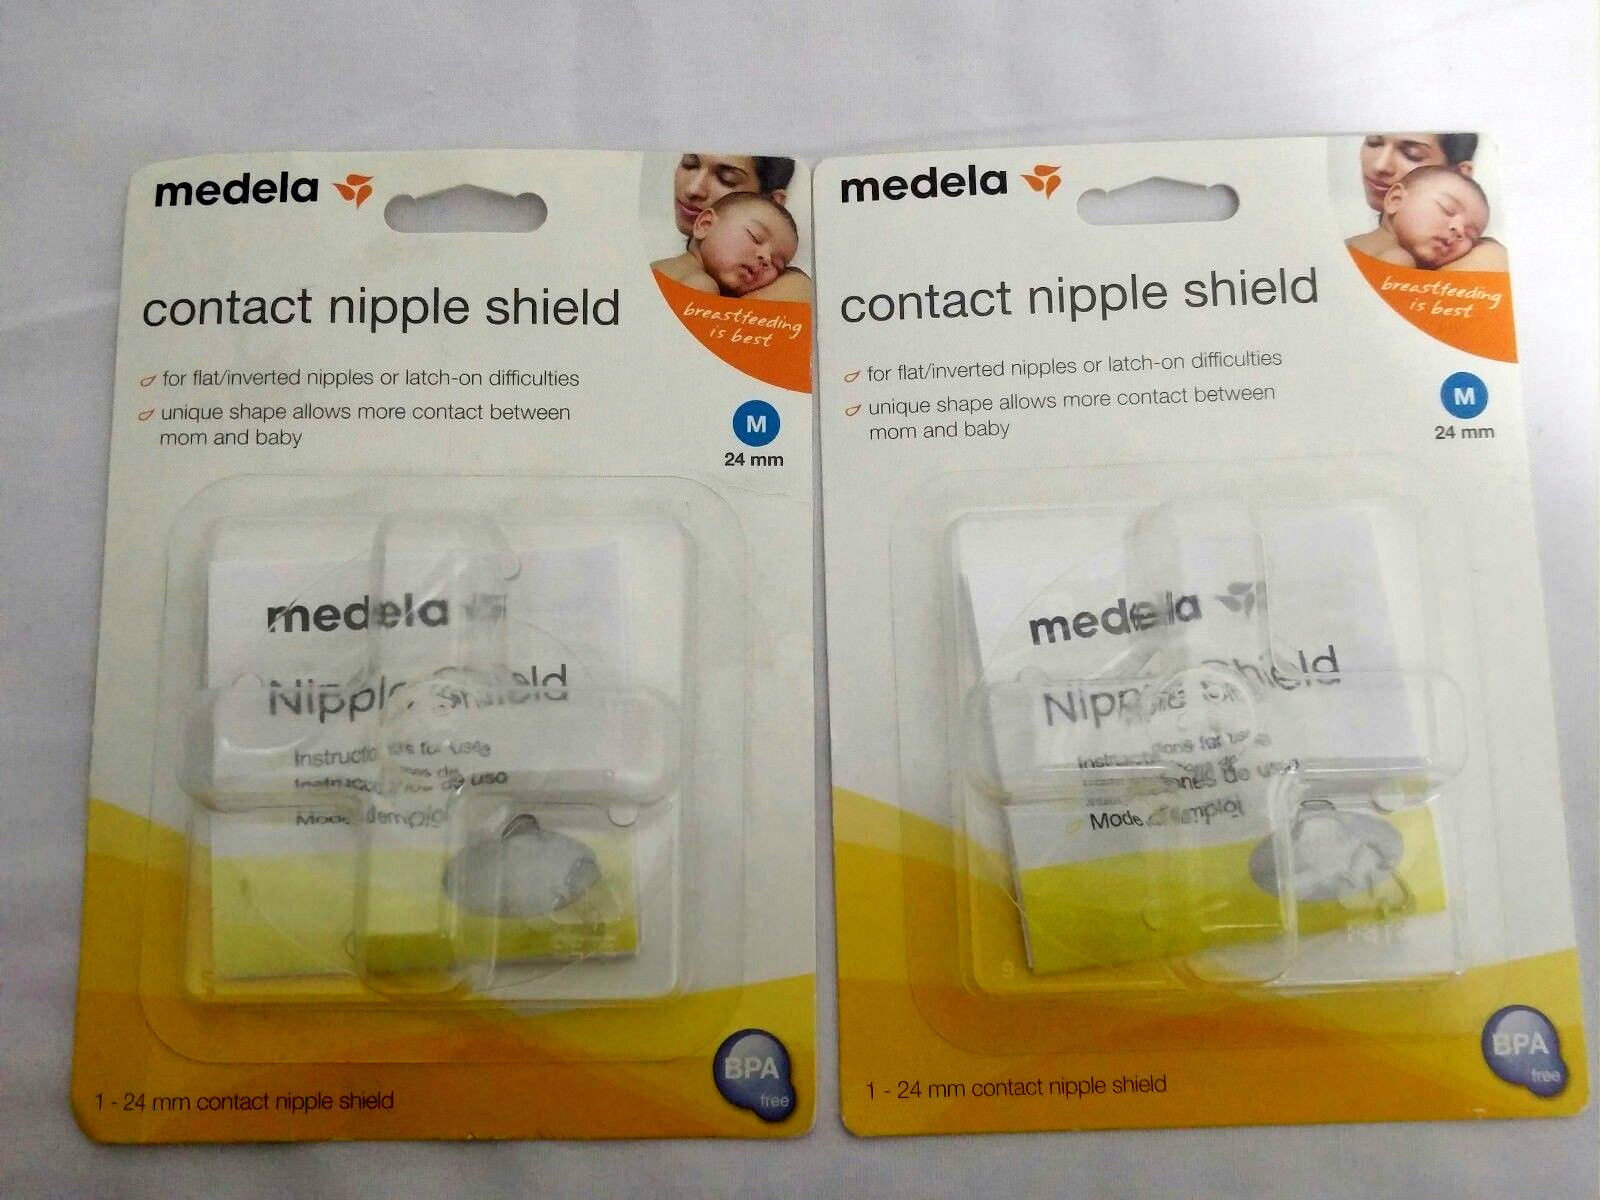 a469a5c6937 2 Medela Contact Nipple Shield M 24mm For and 34 similar items. 57